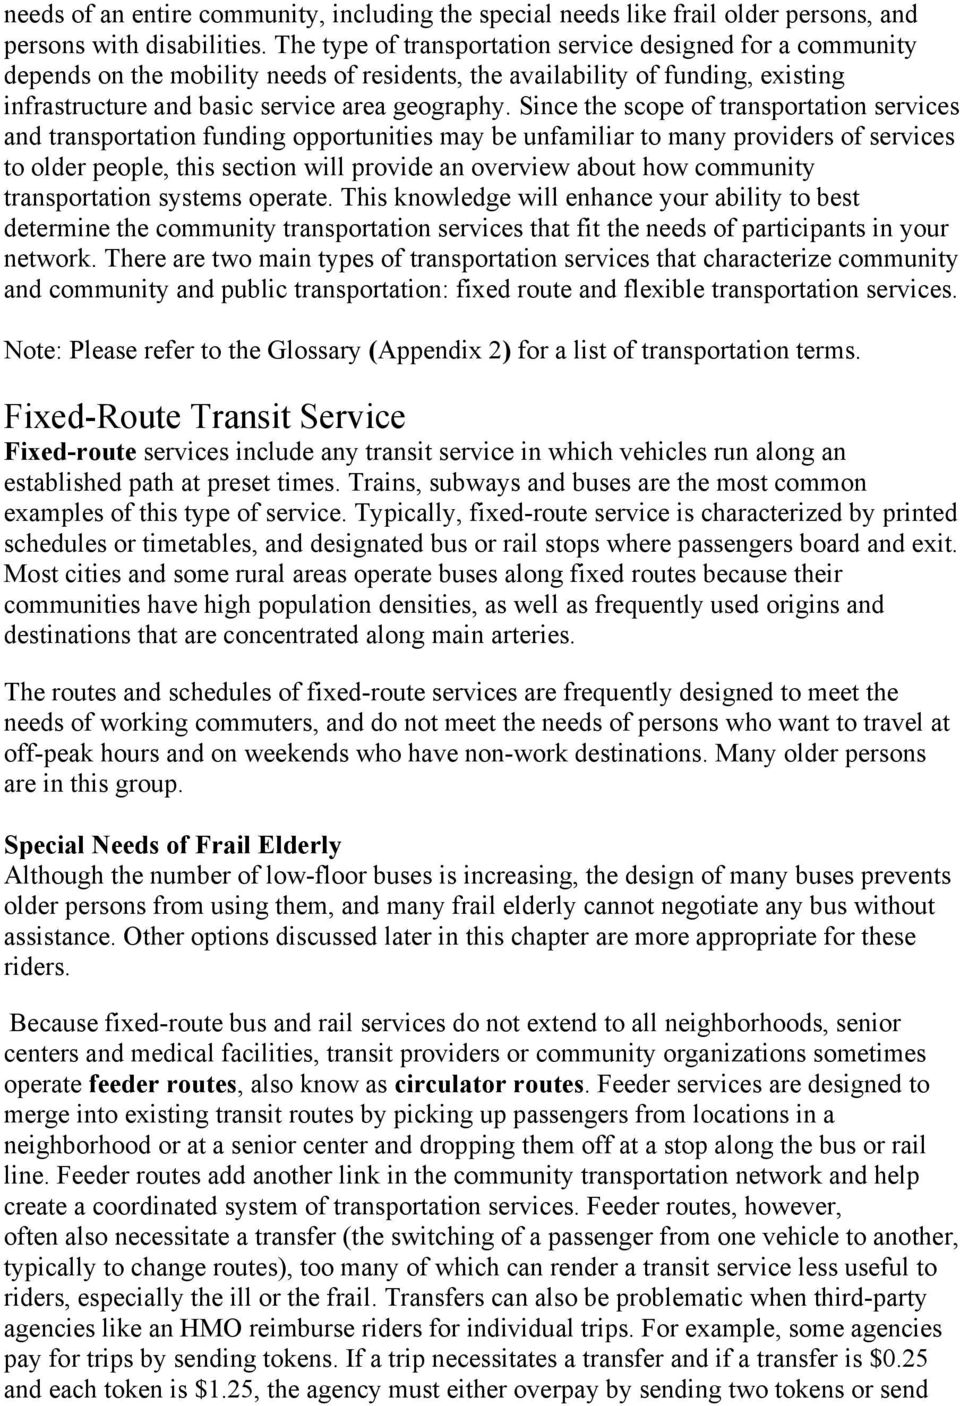 Since the scope of transportation services and transportation funding opportunities may be unfamiliar to many providers of services to older people, this section will provide an overview about how